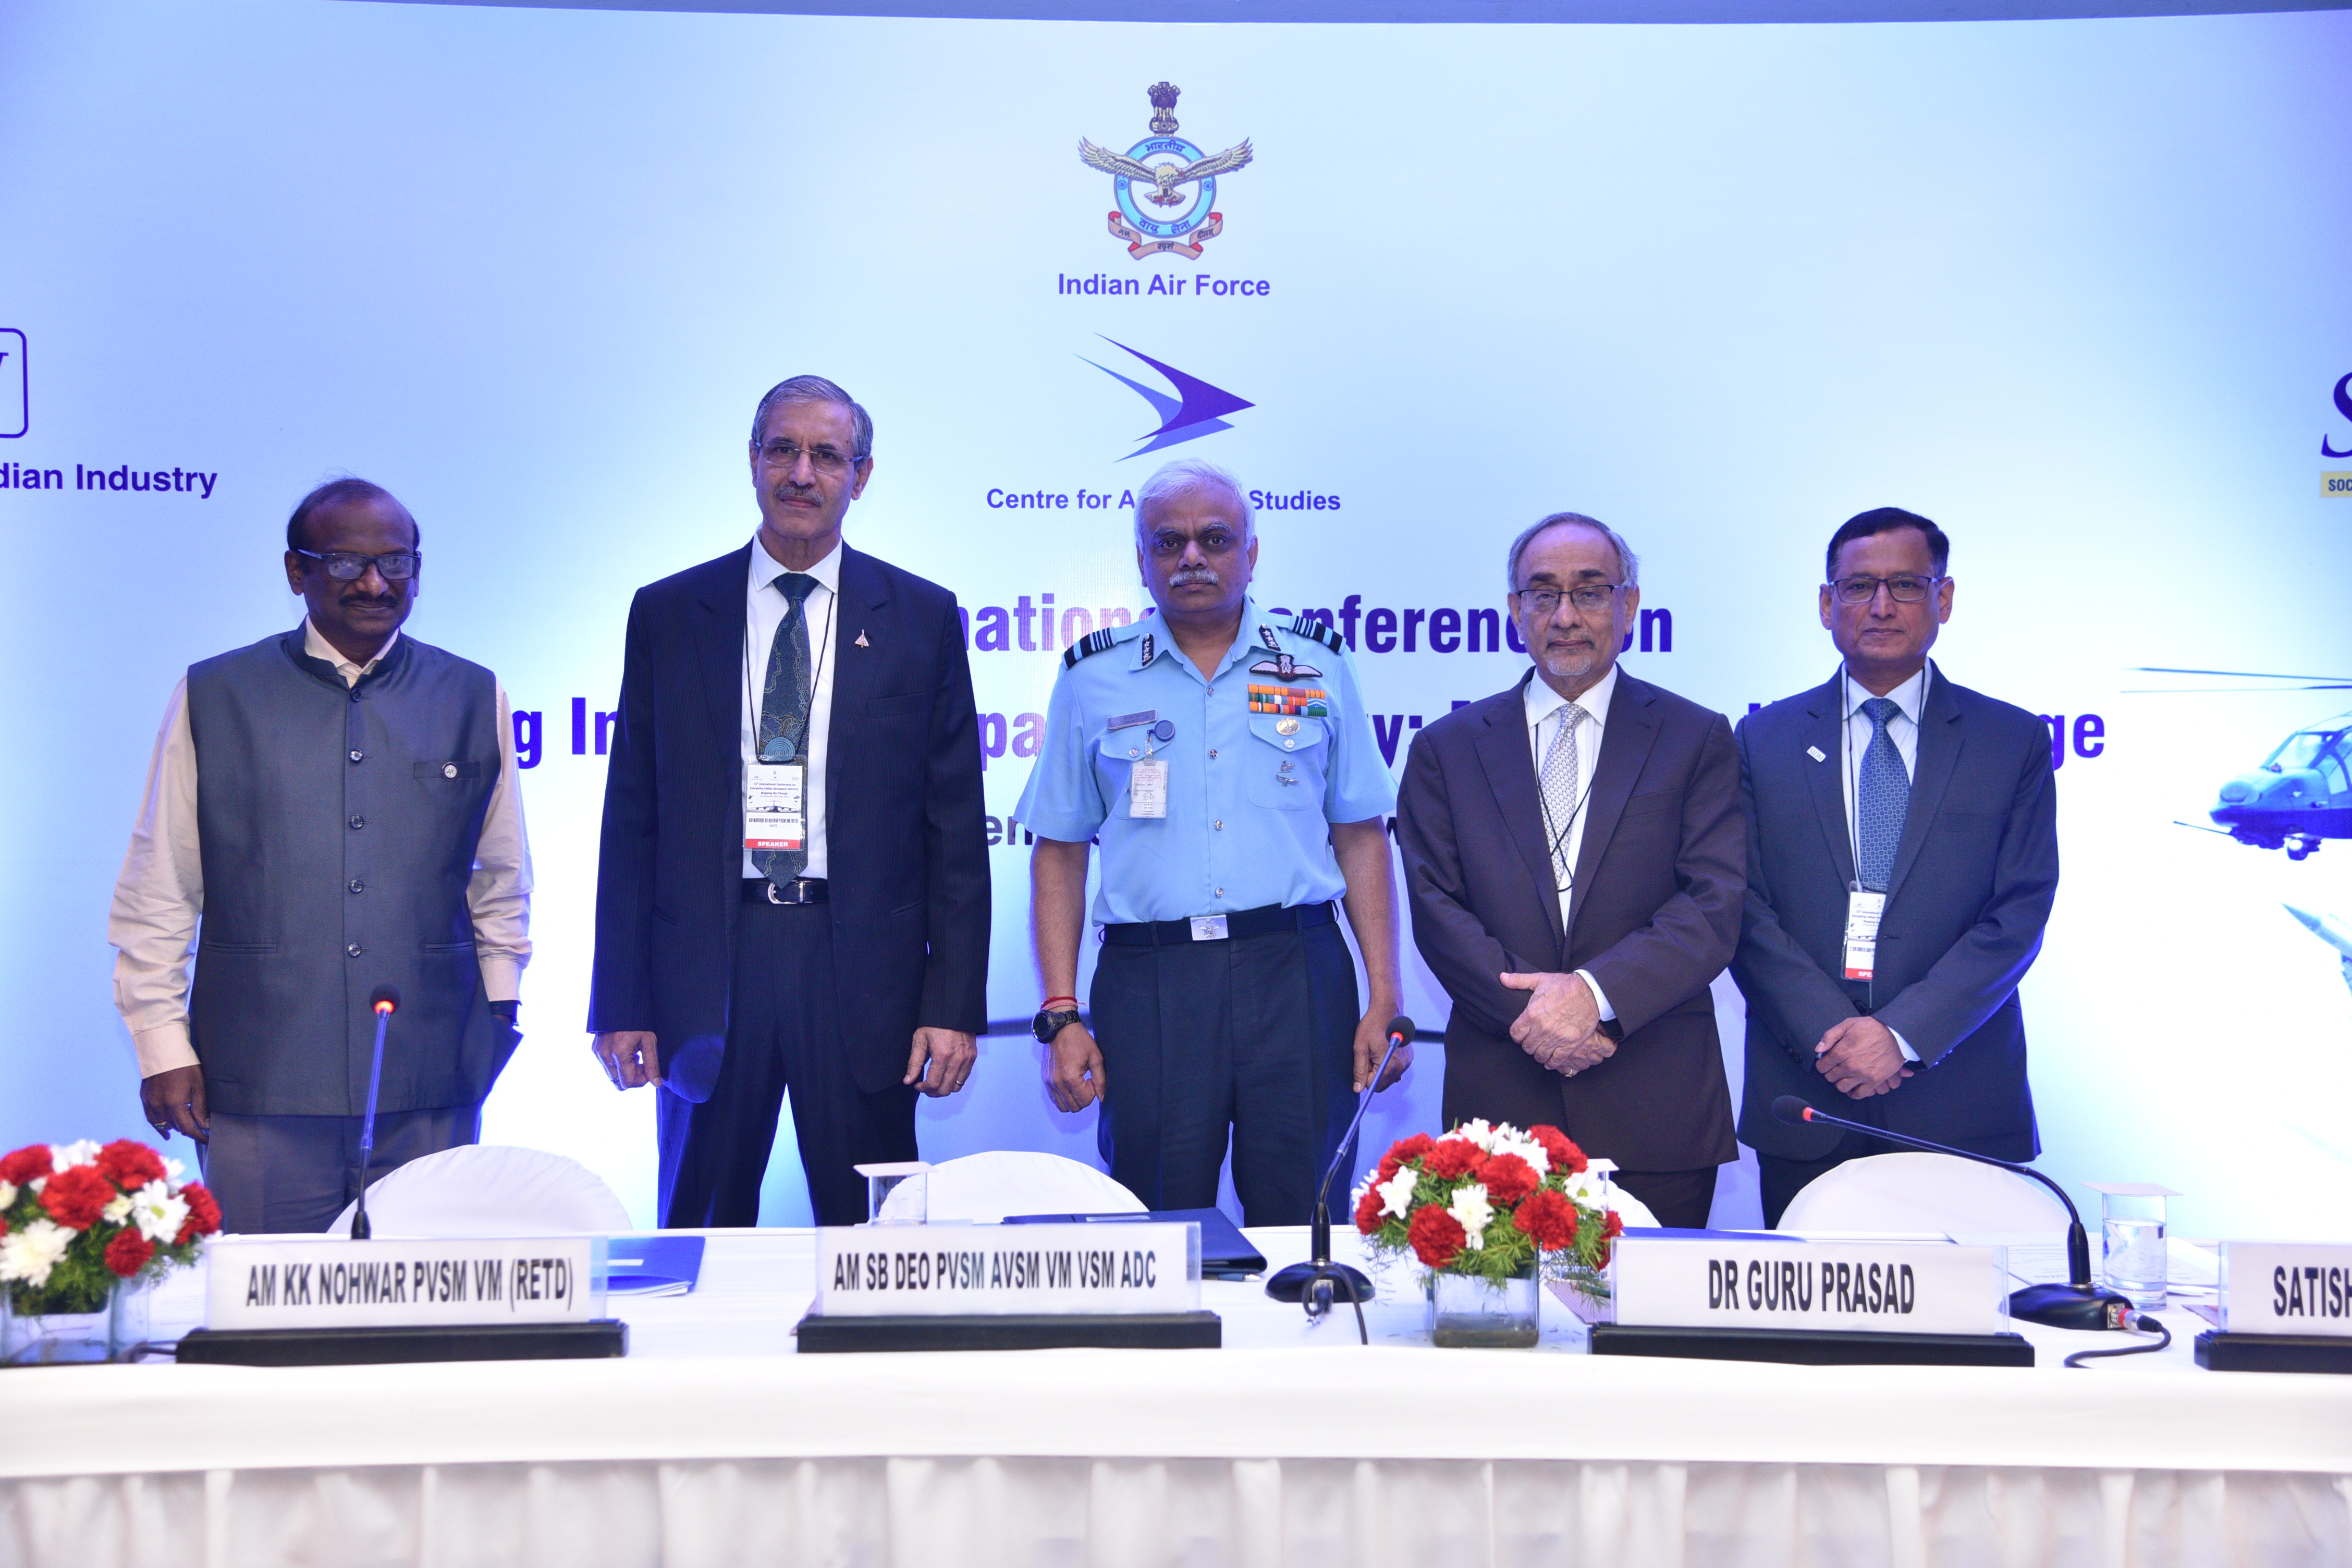 Inaugural Session of the 13th International Conference on Energising Indian Aerospace Industry